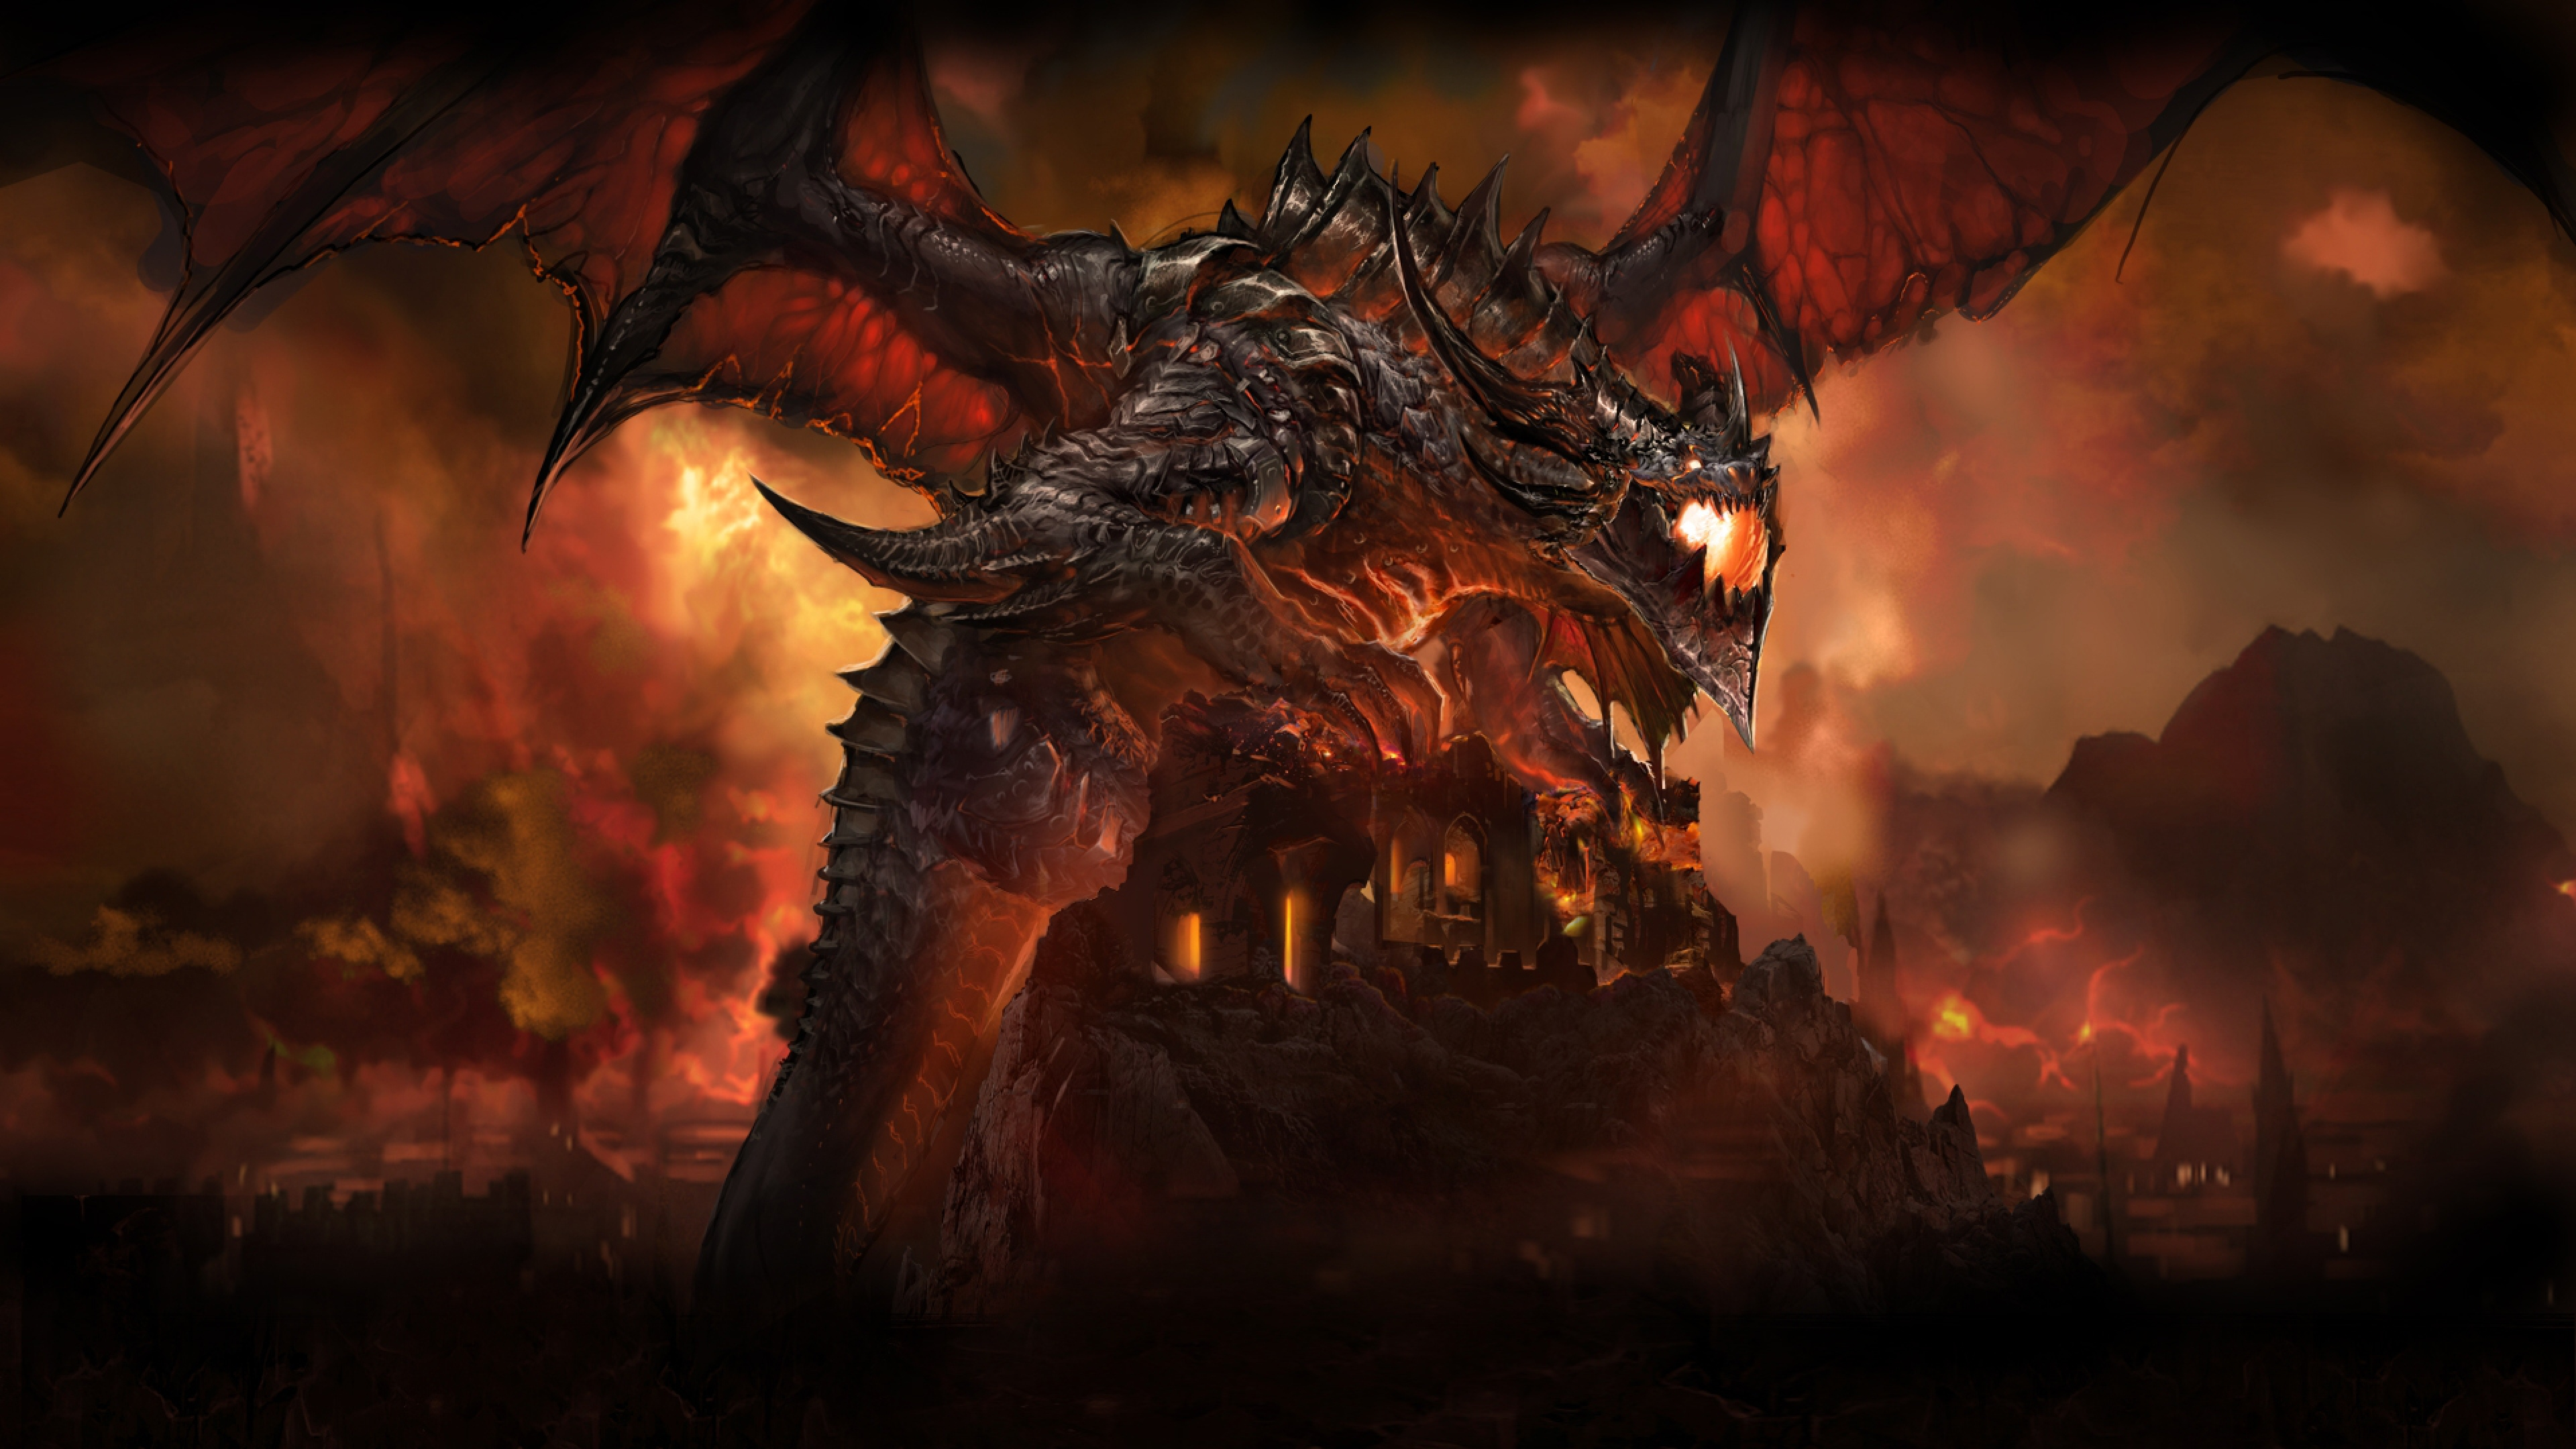 3840x2160 Wallpaper world of warcraft dragon wings tail wildfire 3840x2160